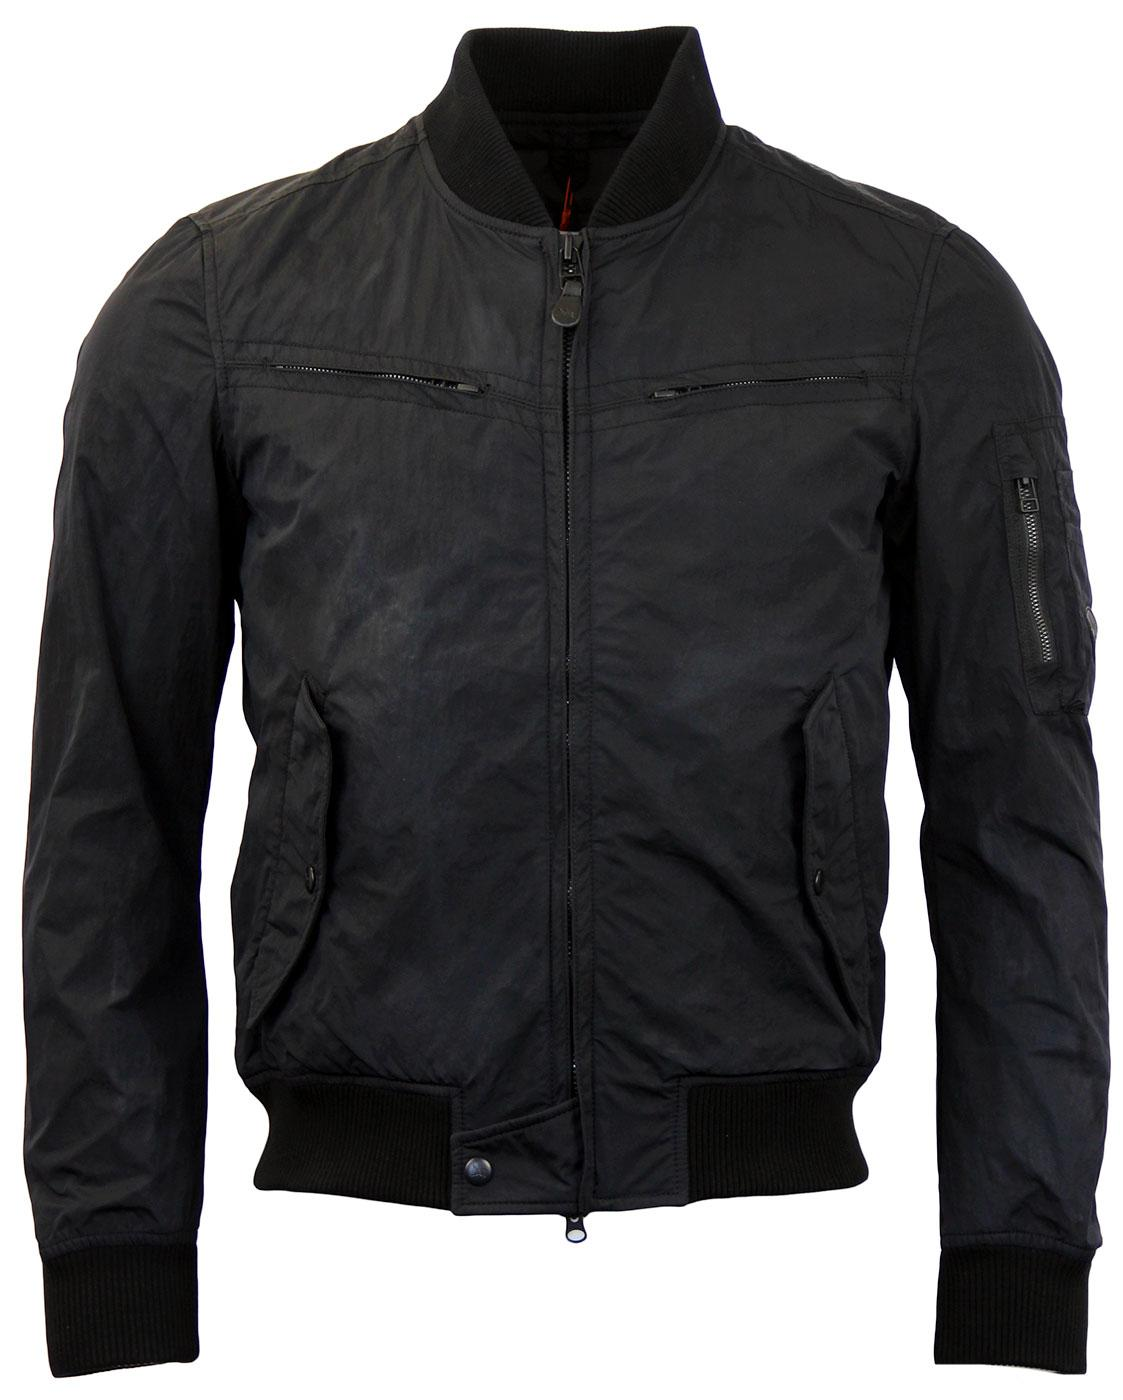 SPIEWAK L2B Retro Mod Caviar Flight Bomber Jacket